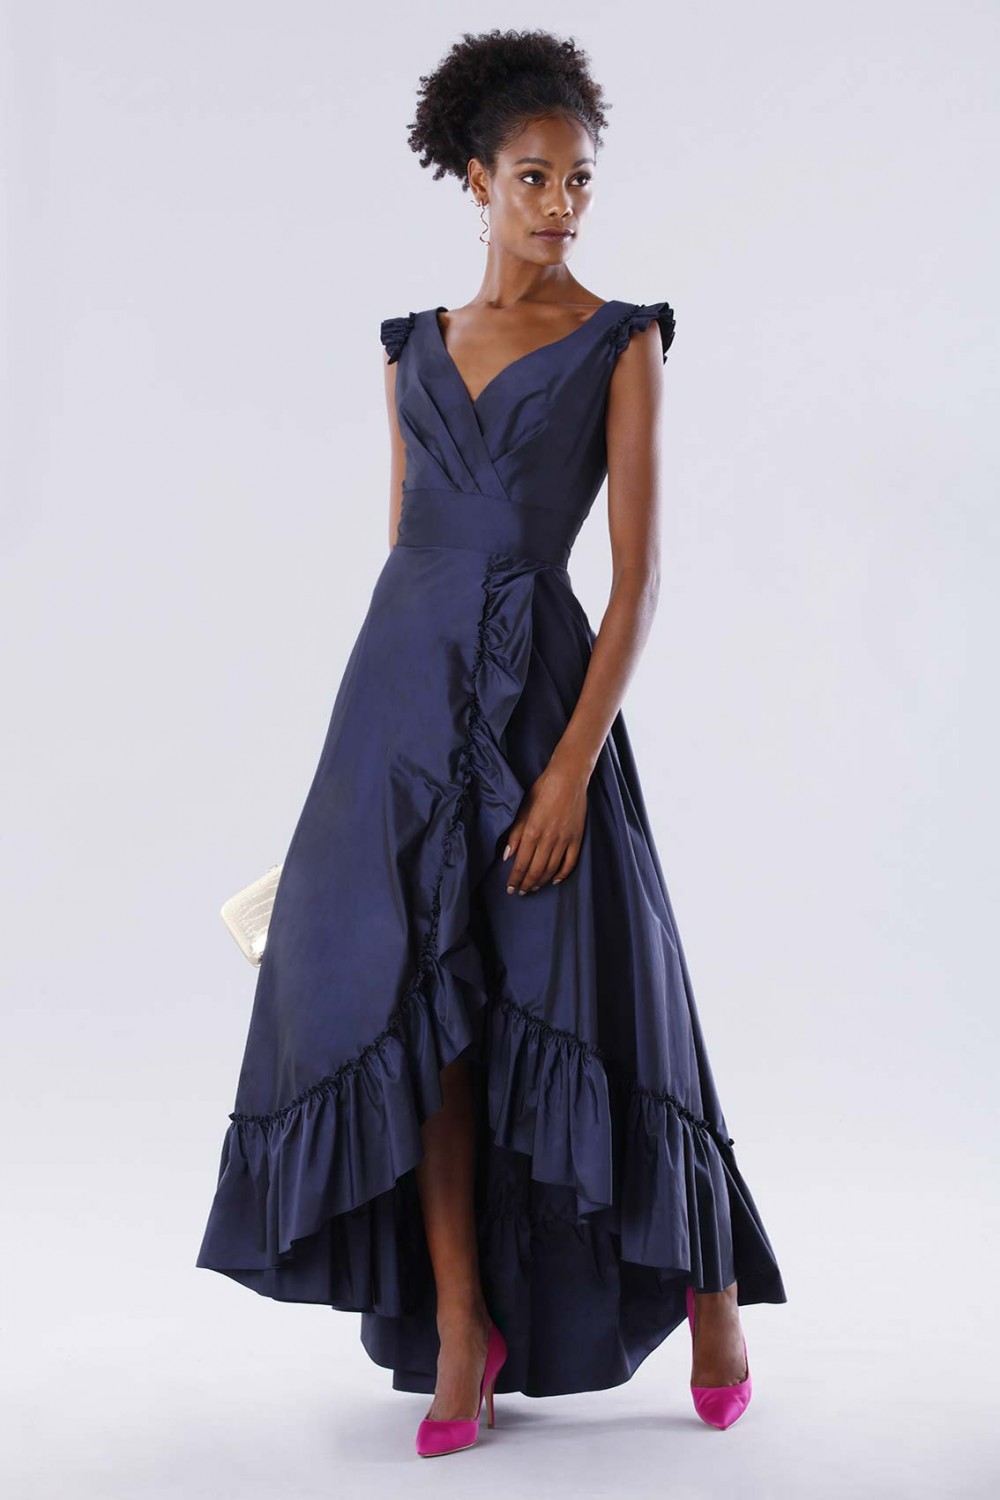 Blue taffeta dress with ruffles